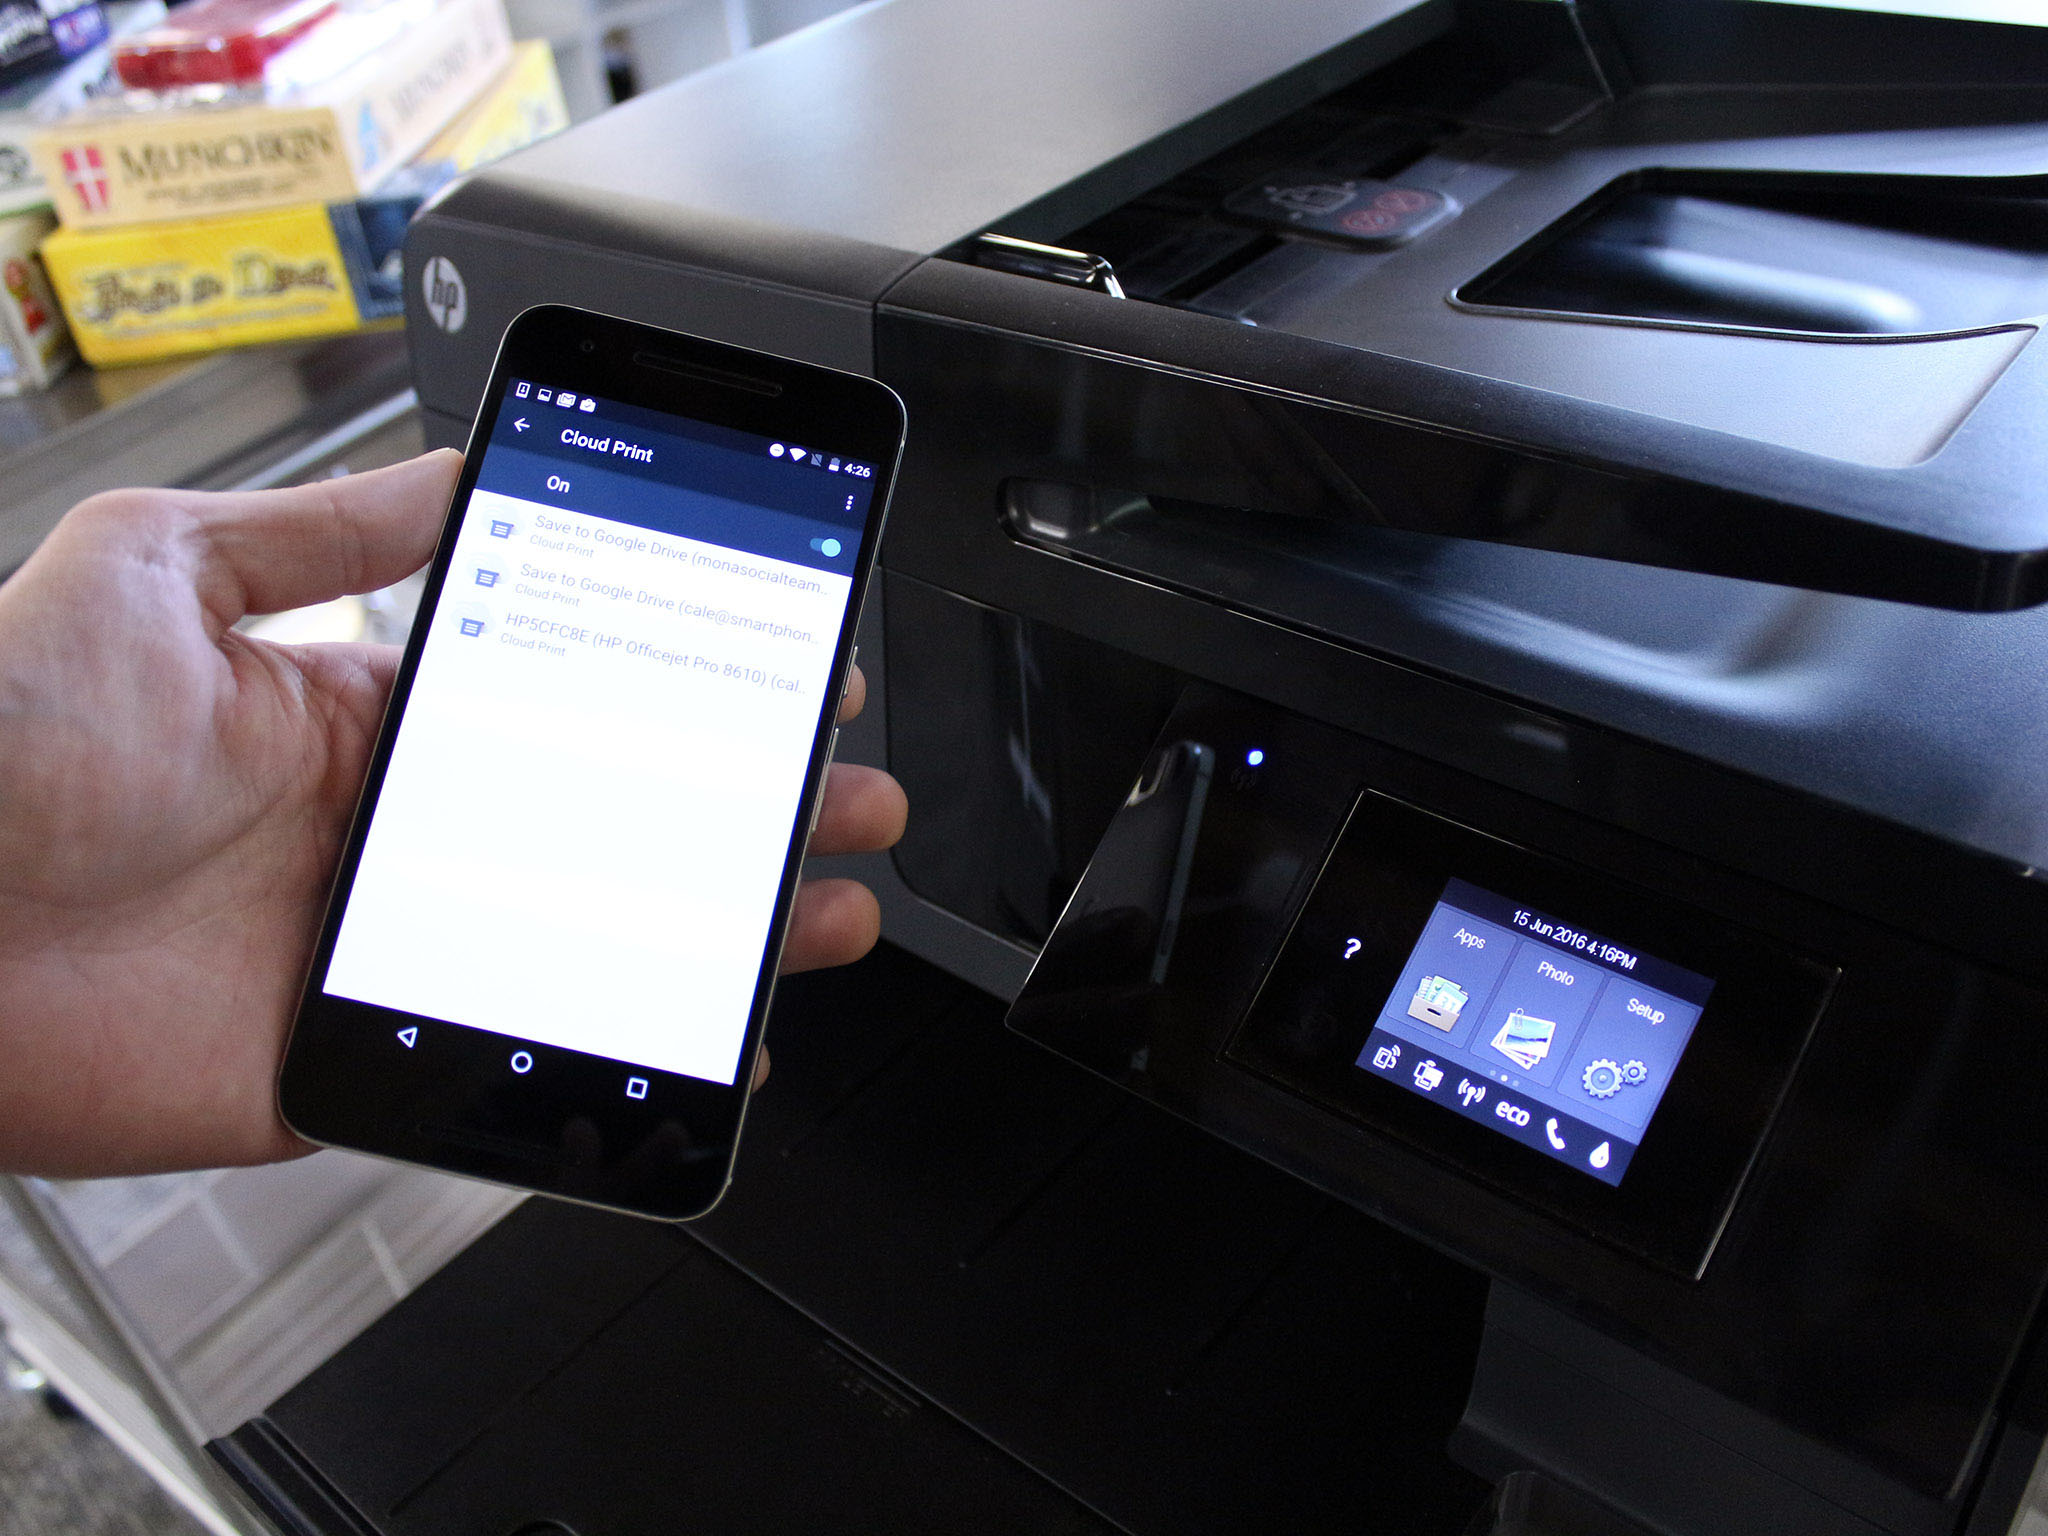 how to add manually a printer to pixel 2 phone